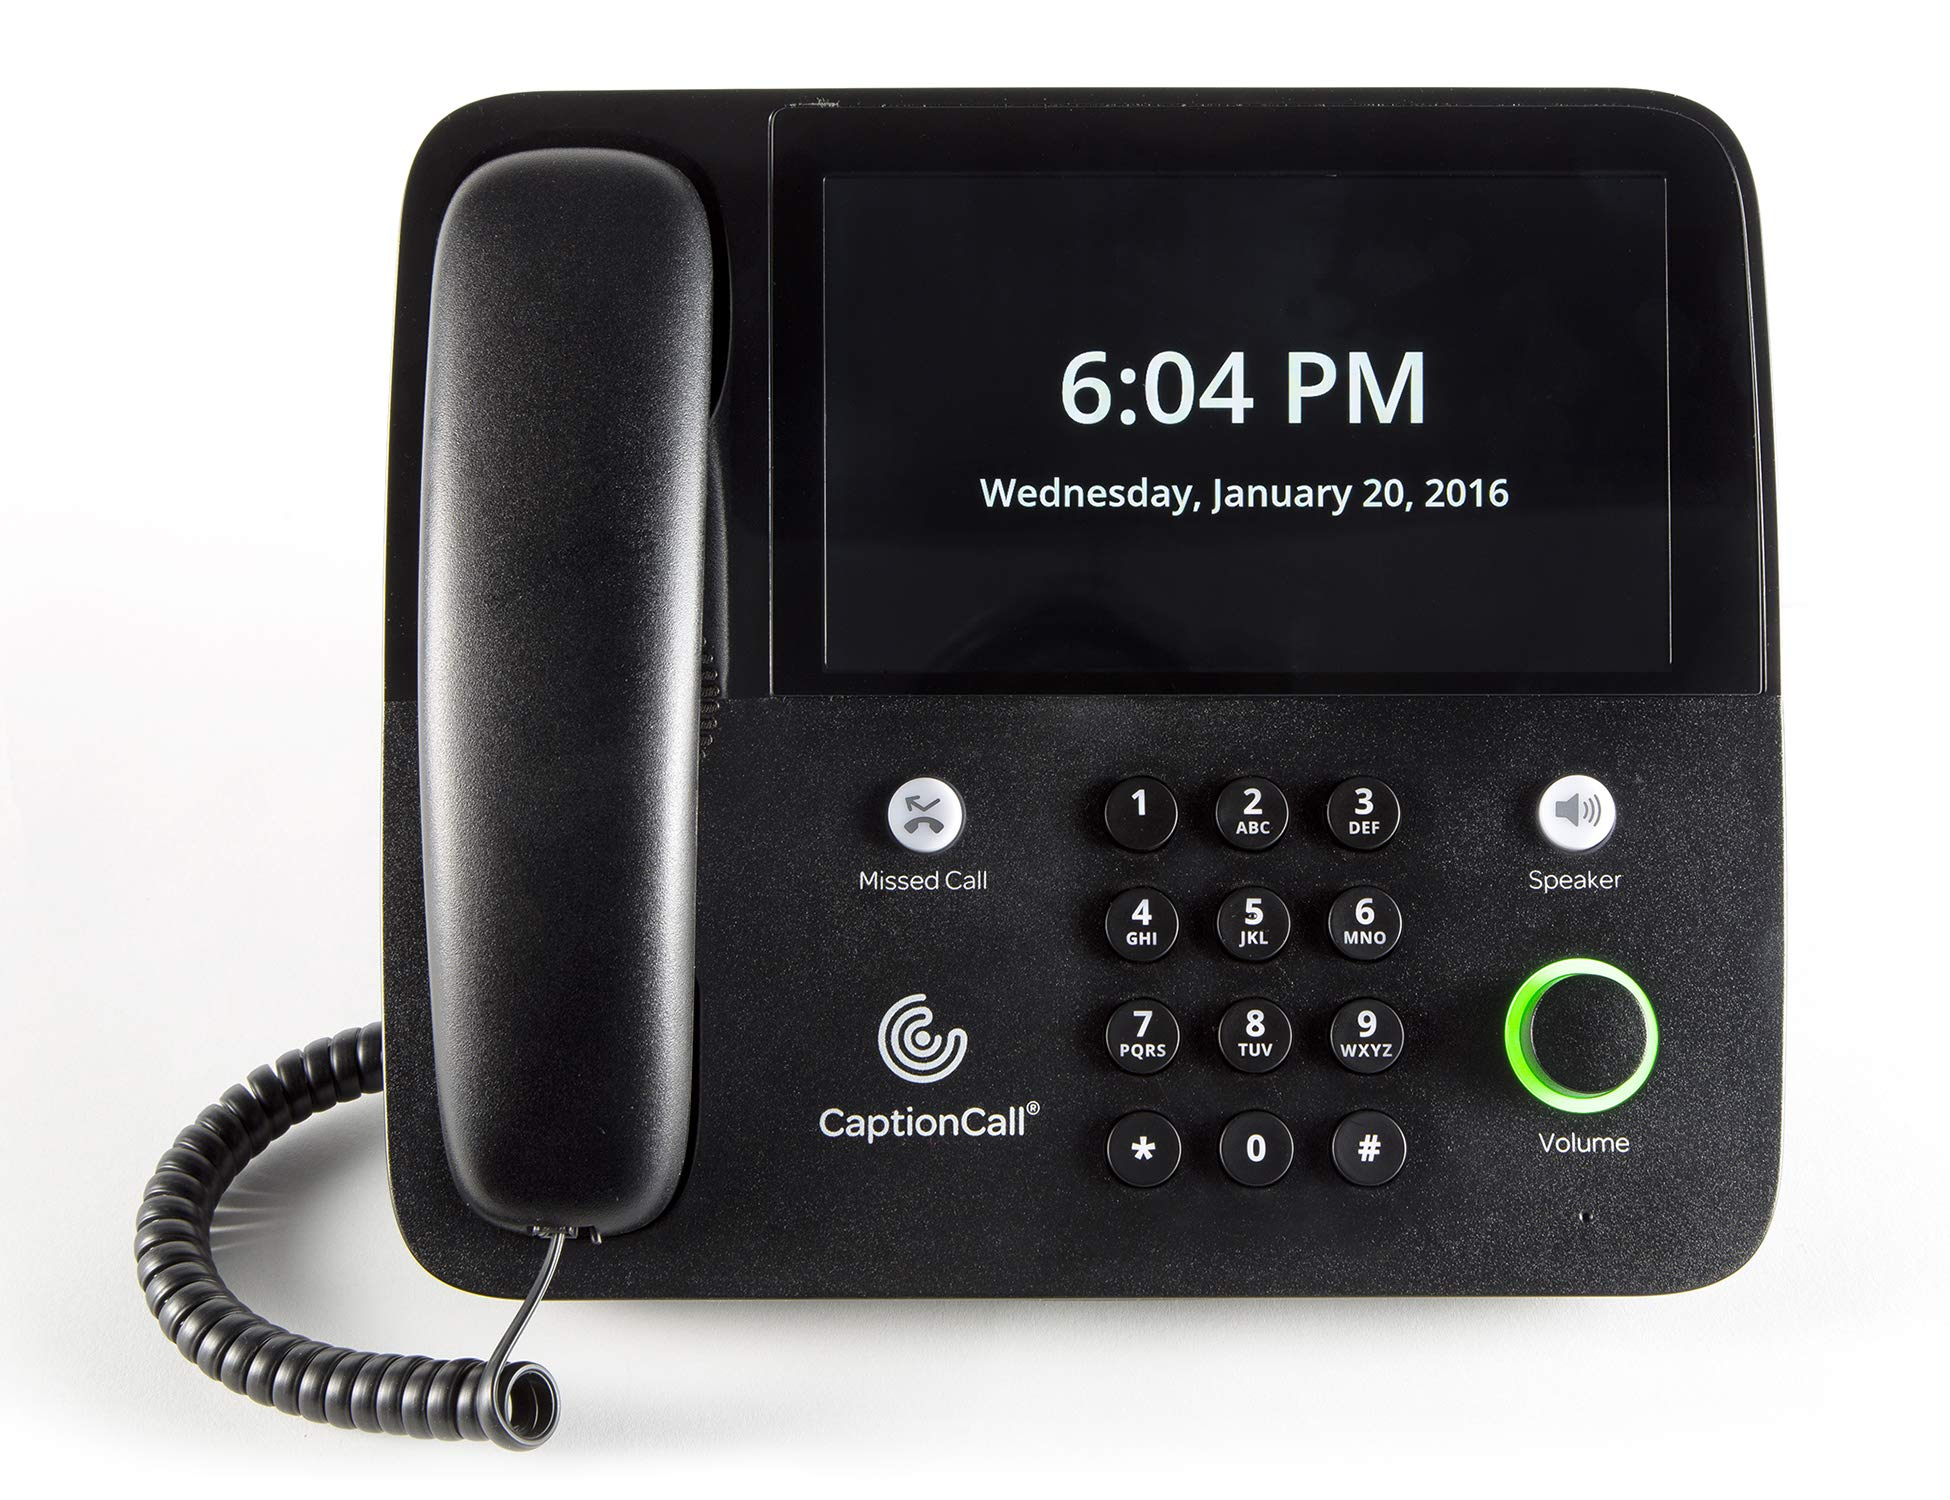 CaptionCall 67Tb Amplified Captioned Corded Home Telephone Touch Screen, 58dB Amplification, Caller ID, Answering Machine, Bluetooth, Loud Ringer Hearing Impaired by CaptionCall (Image #6)